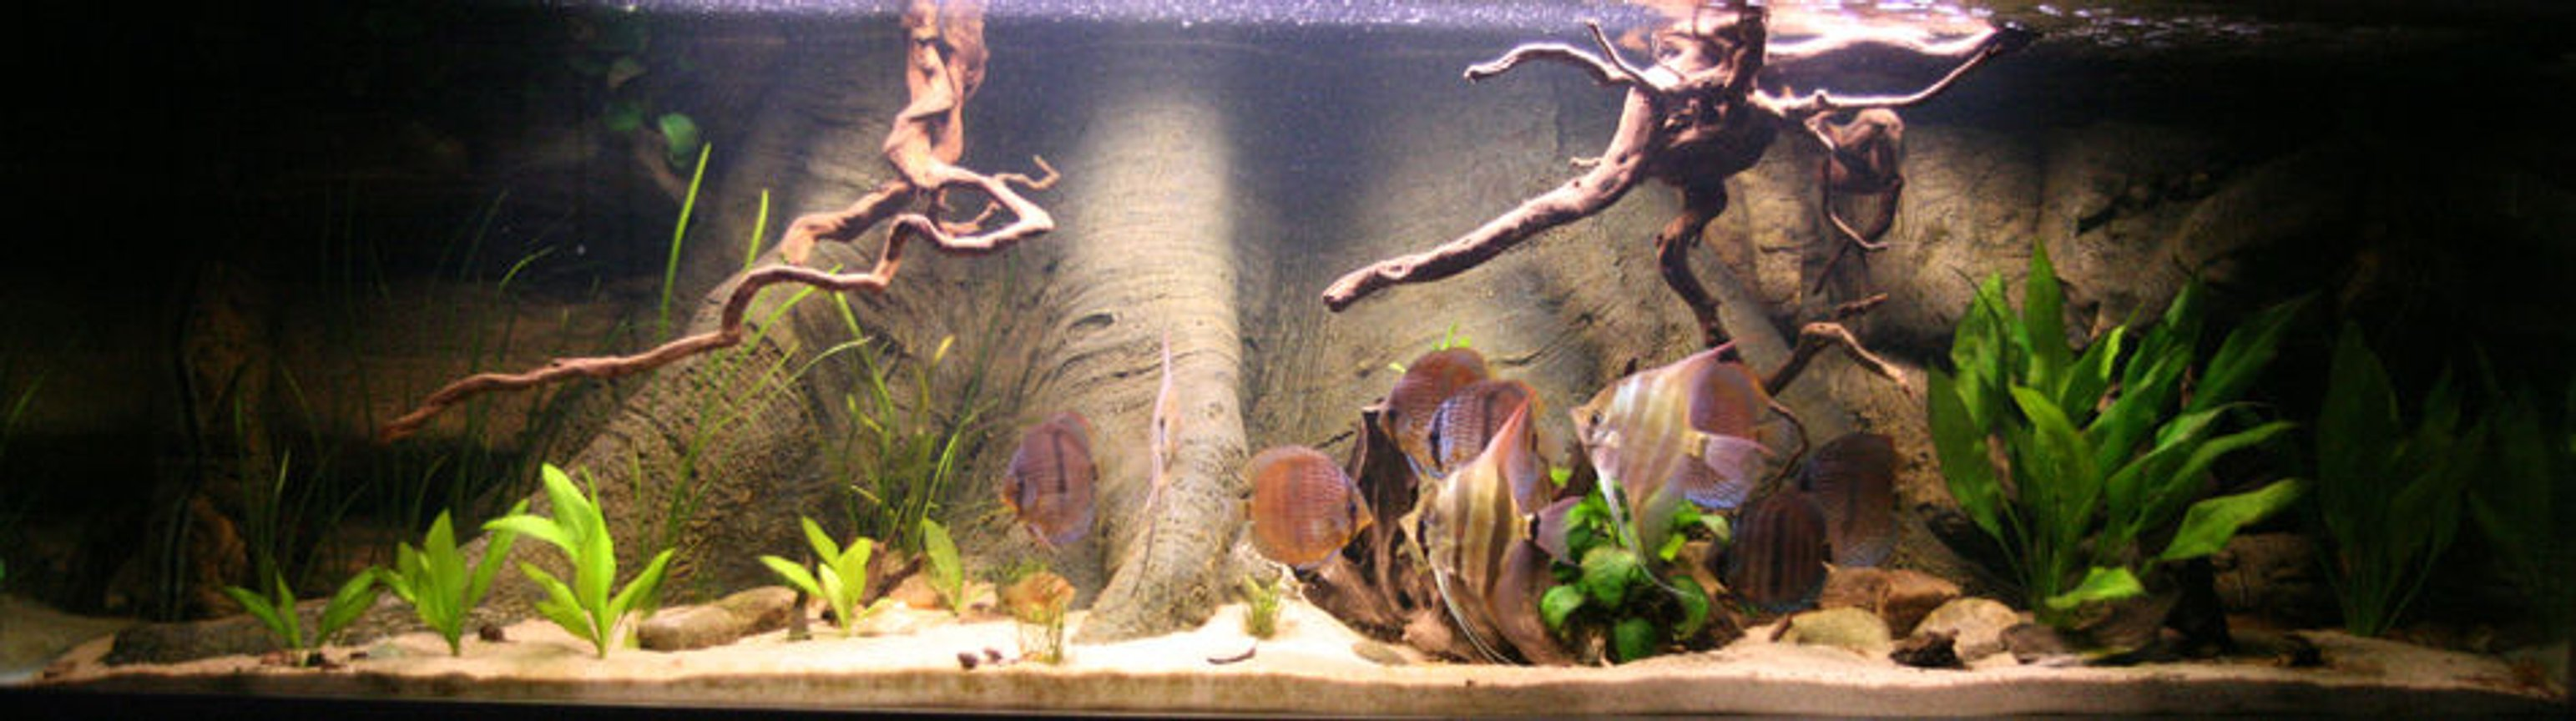 freshwater fish - pterophyllum sp. - white blushing angel stocking in 187 gallons tank - Tank in evening light.